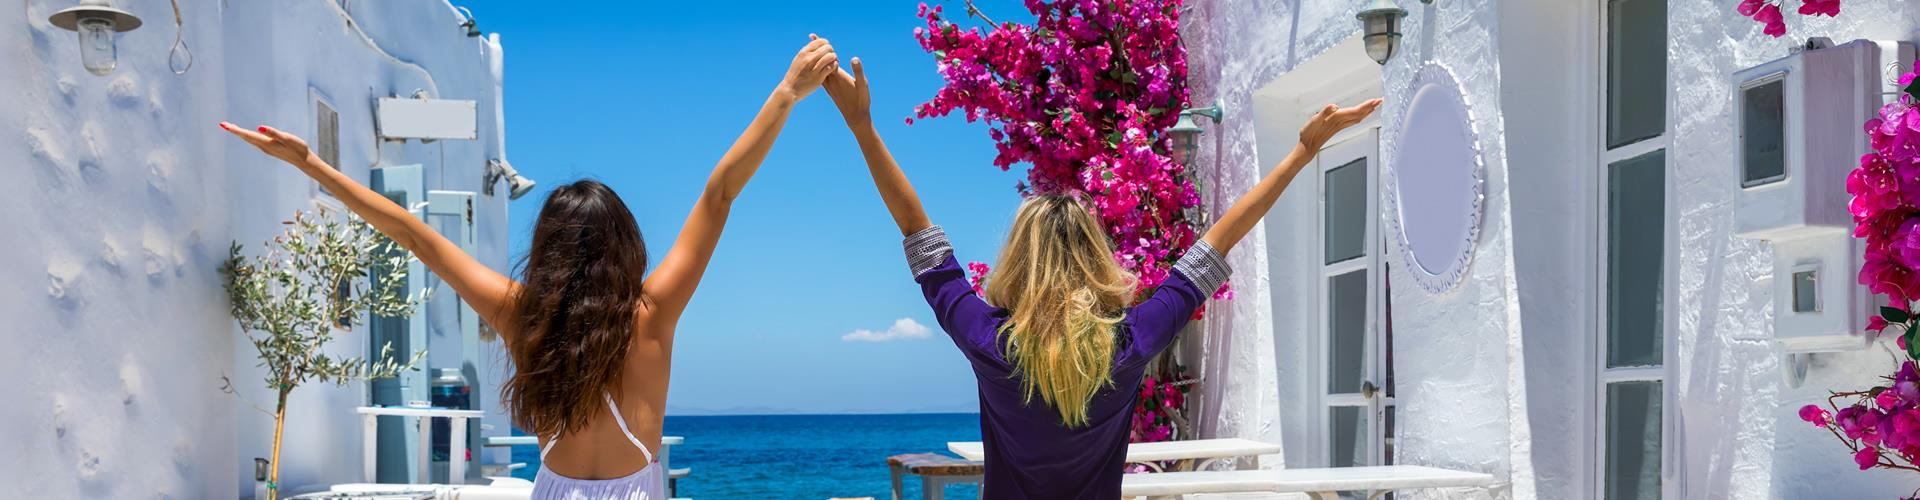 Traveling with Friends to Santorini? Best Places to Stay & Things to Do